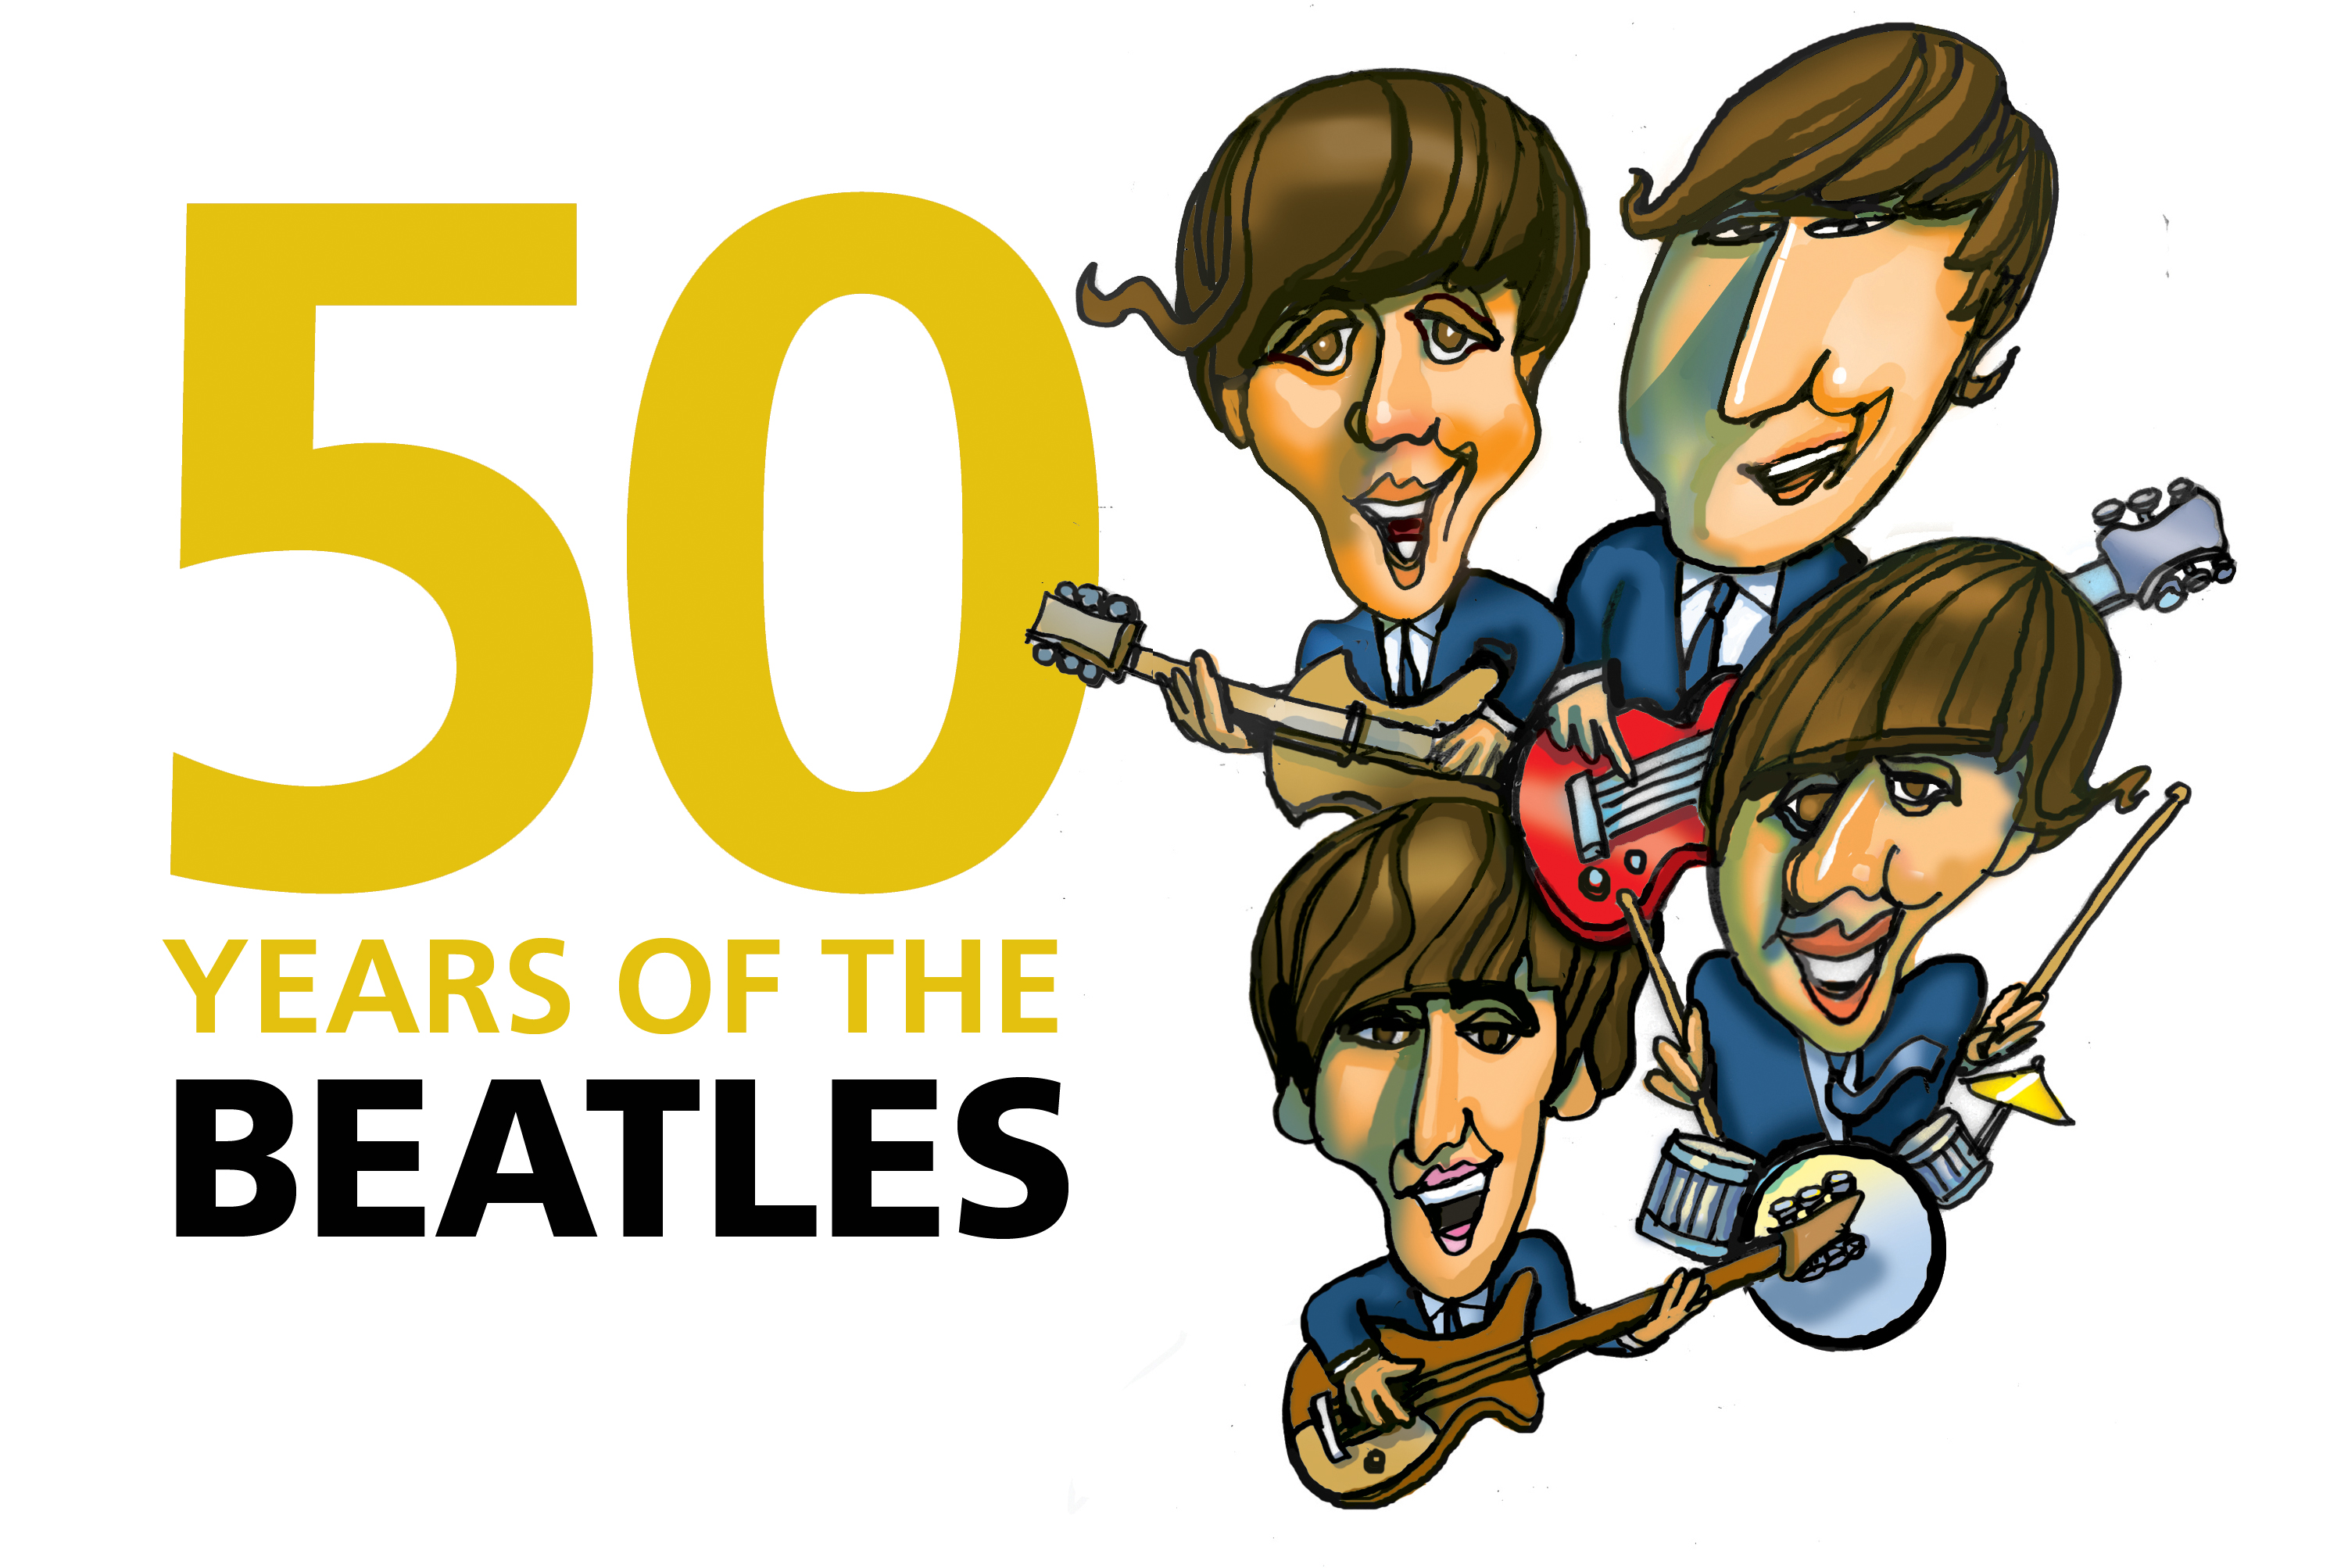 Beatles caricature clipart clip library download Free Beatles Cliparts, Download Free Clip Art, Free Clip Art on ... clip library download